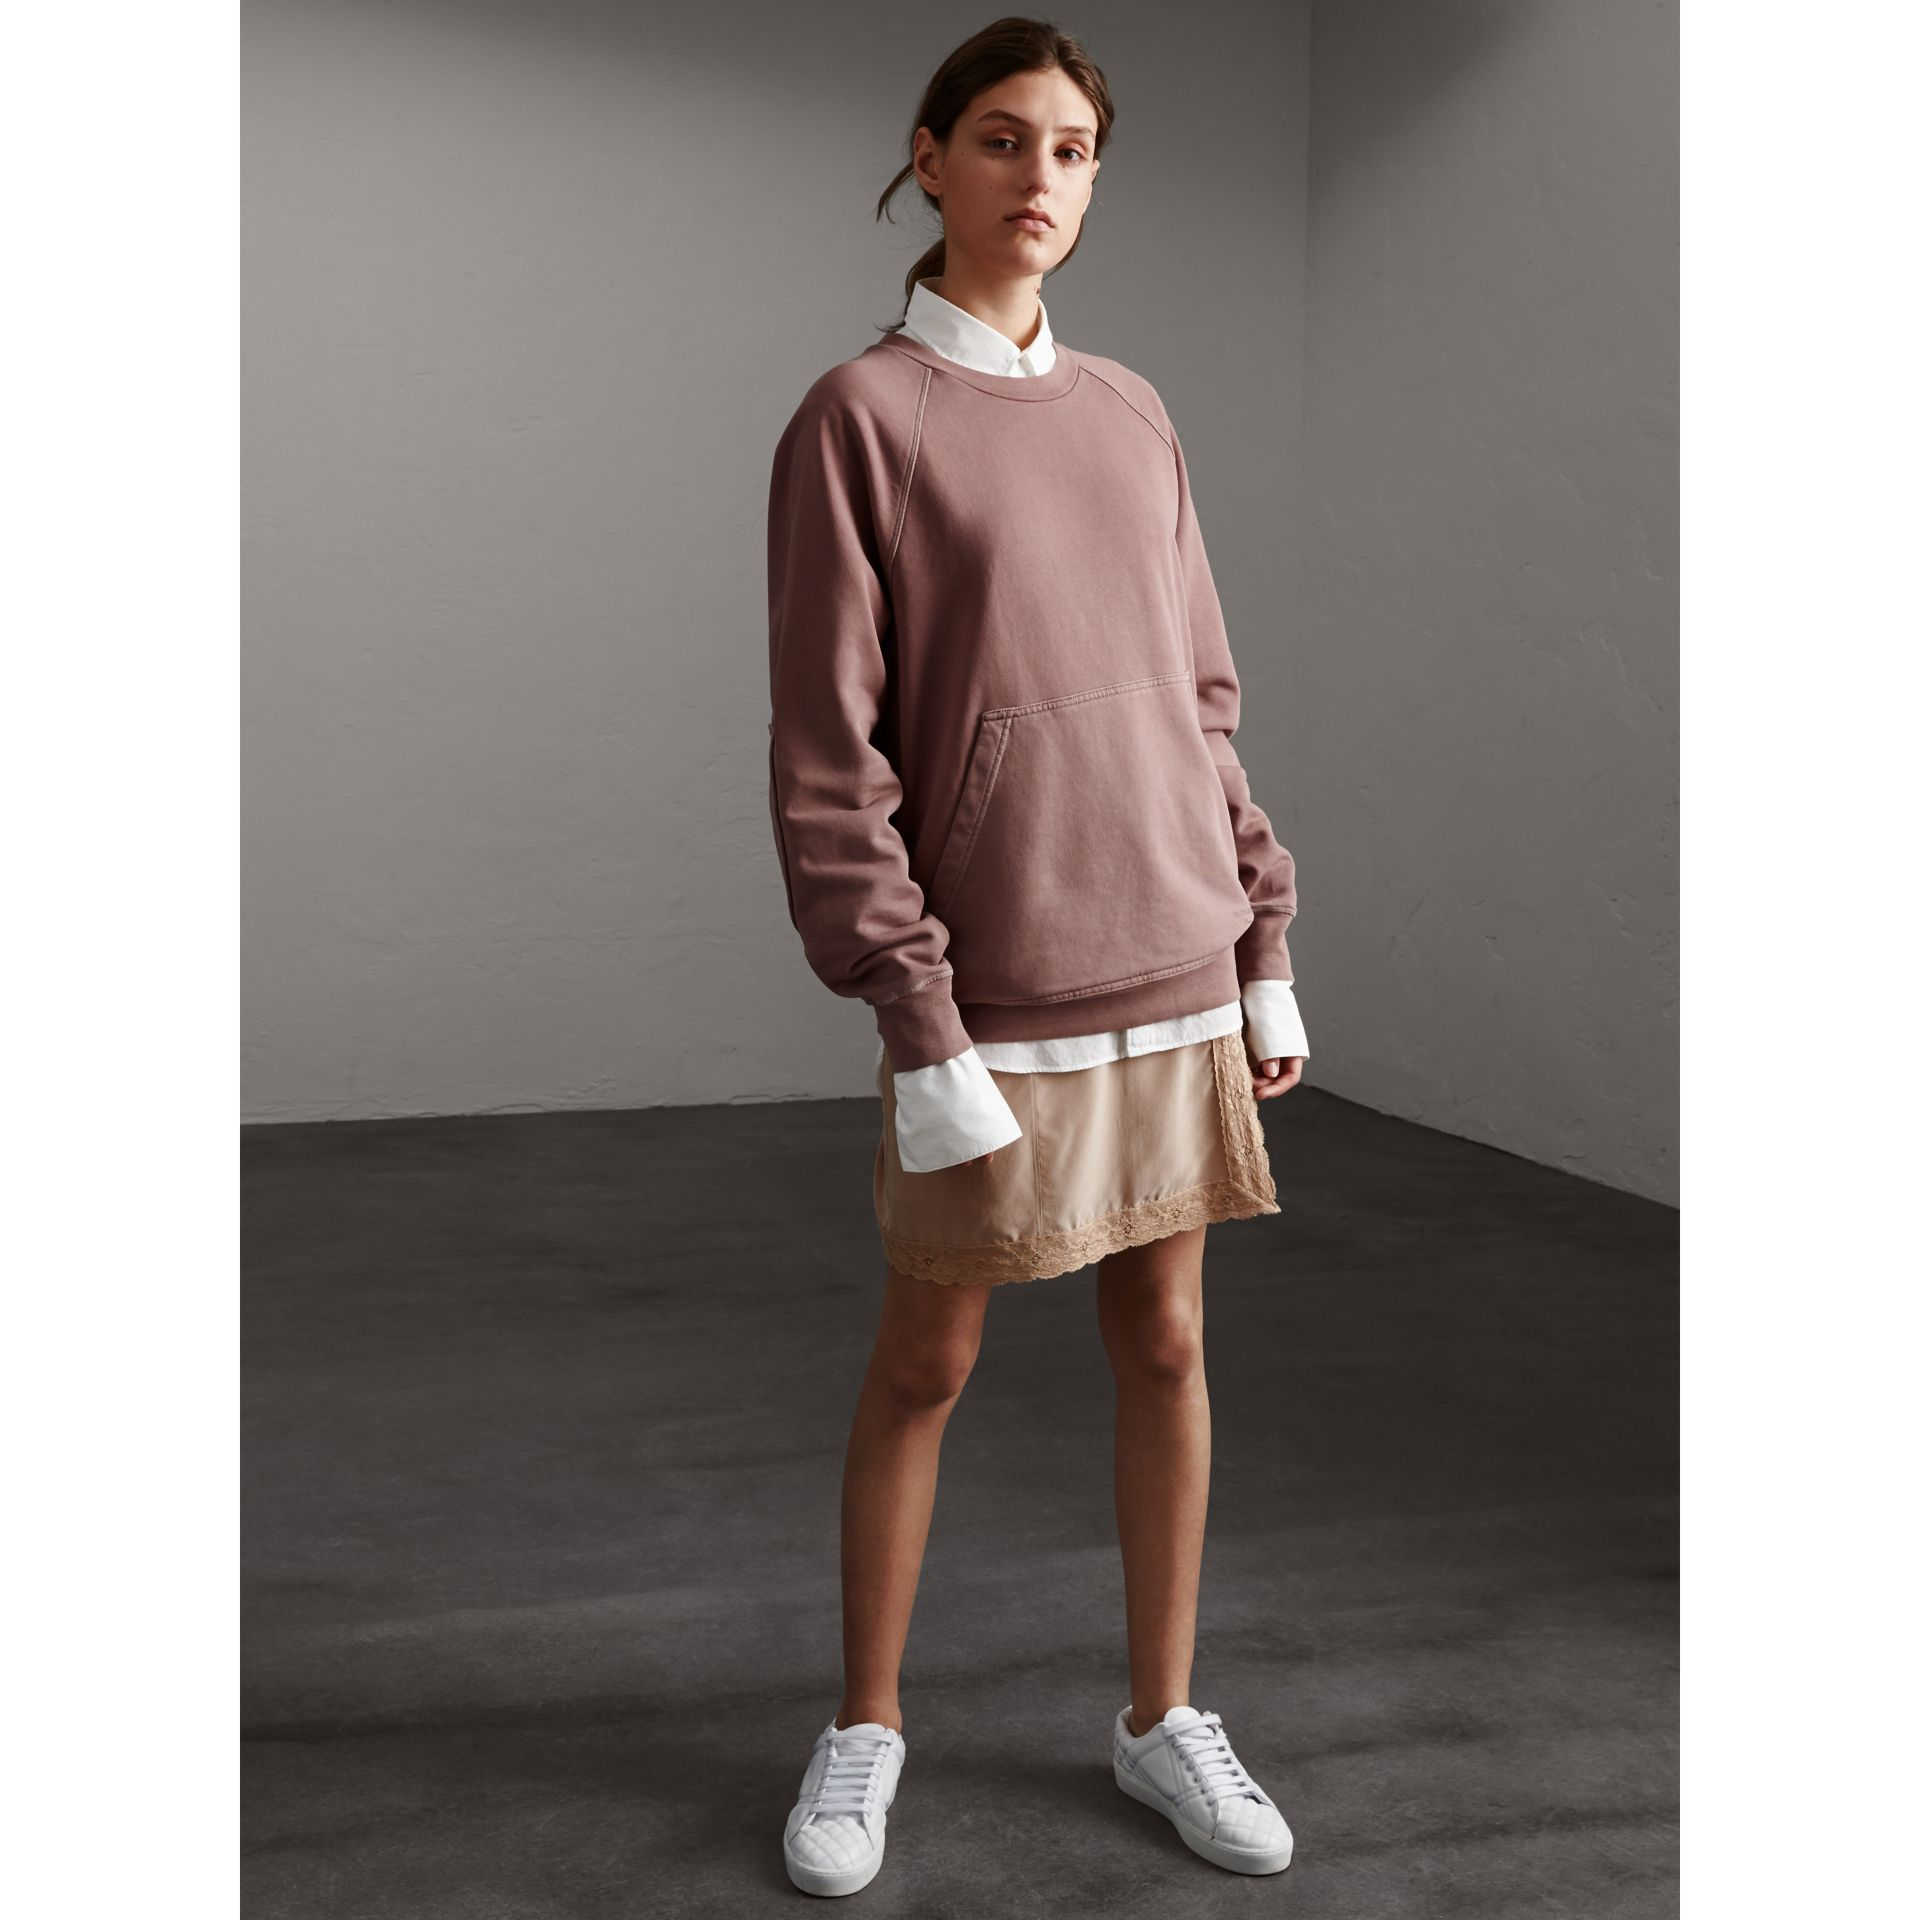 Unisex Pigment-dyed Cotton Oversize Sweatshirt in Dusty Mauve - Women | Burberry - gallery image 5